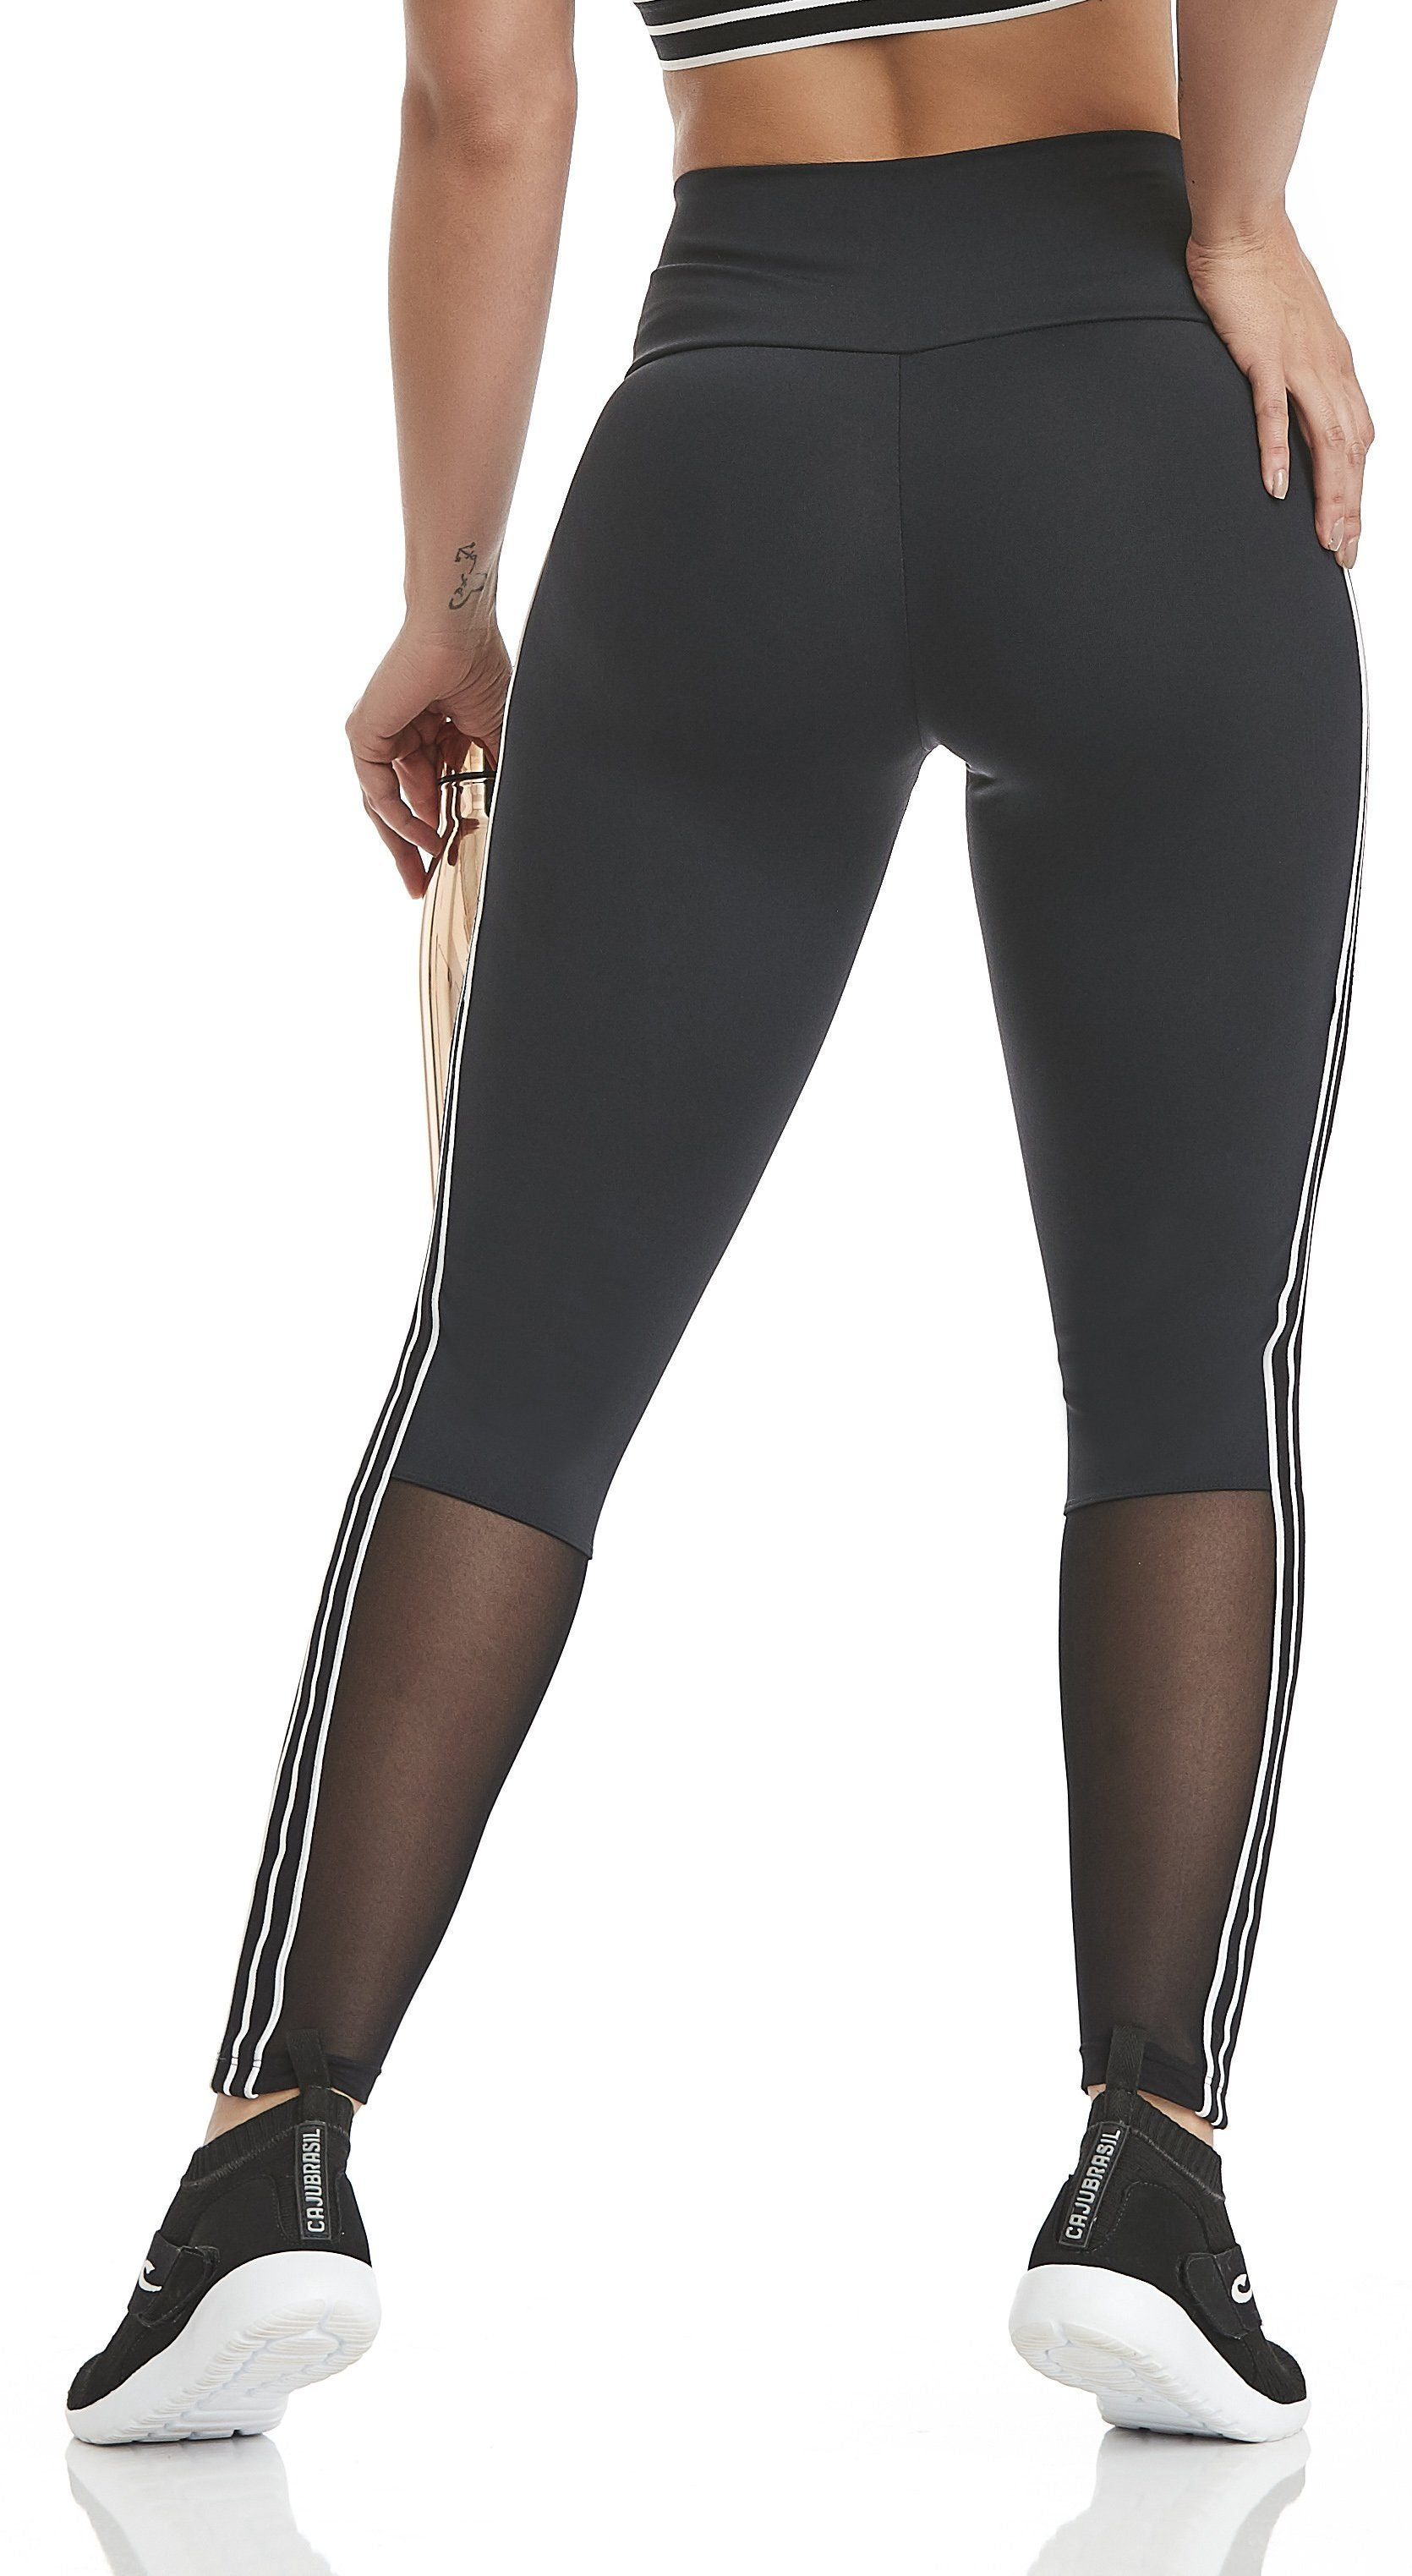 Brazilian Workout Legging -  NZ Allow Black